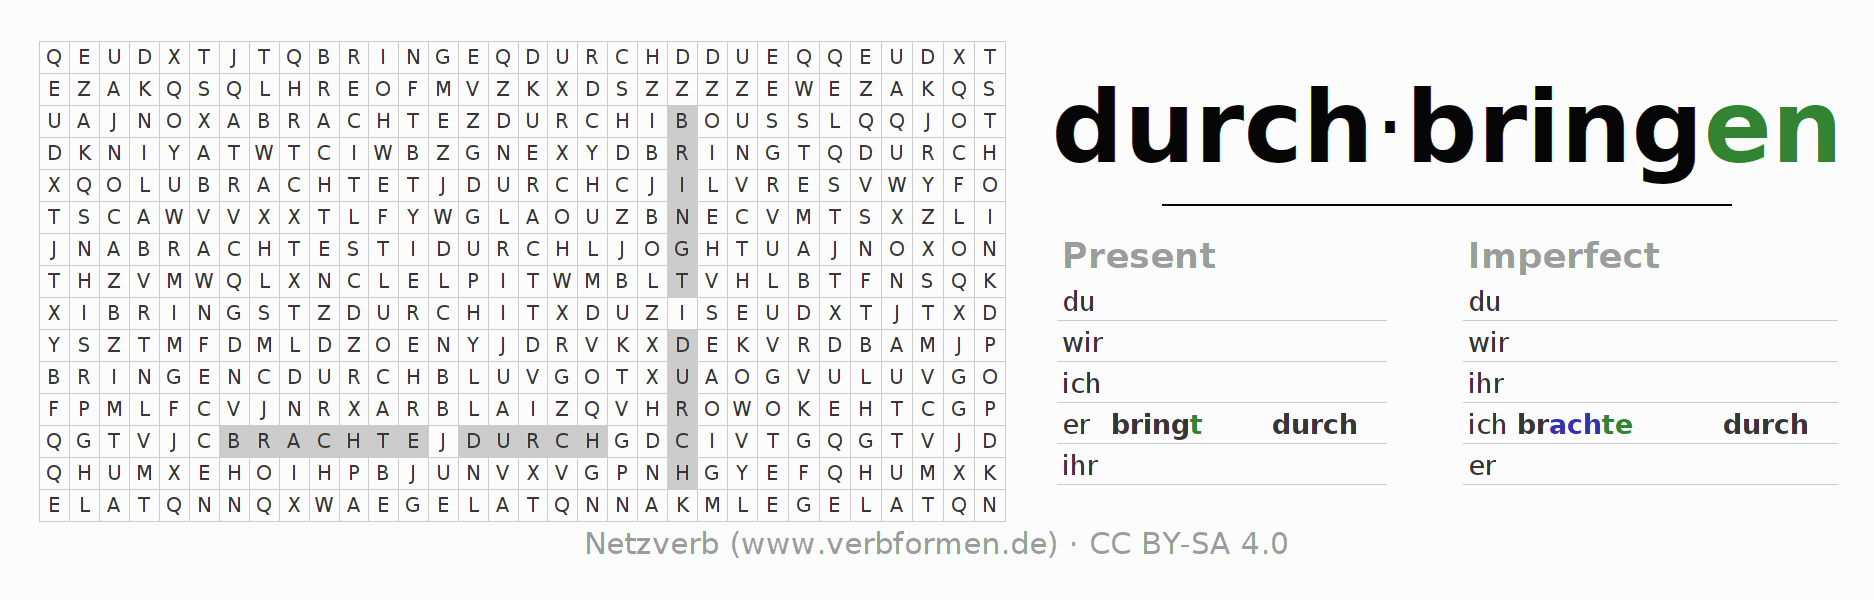 Word search puzzle for the conjugation of the verb durchbringen